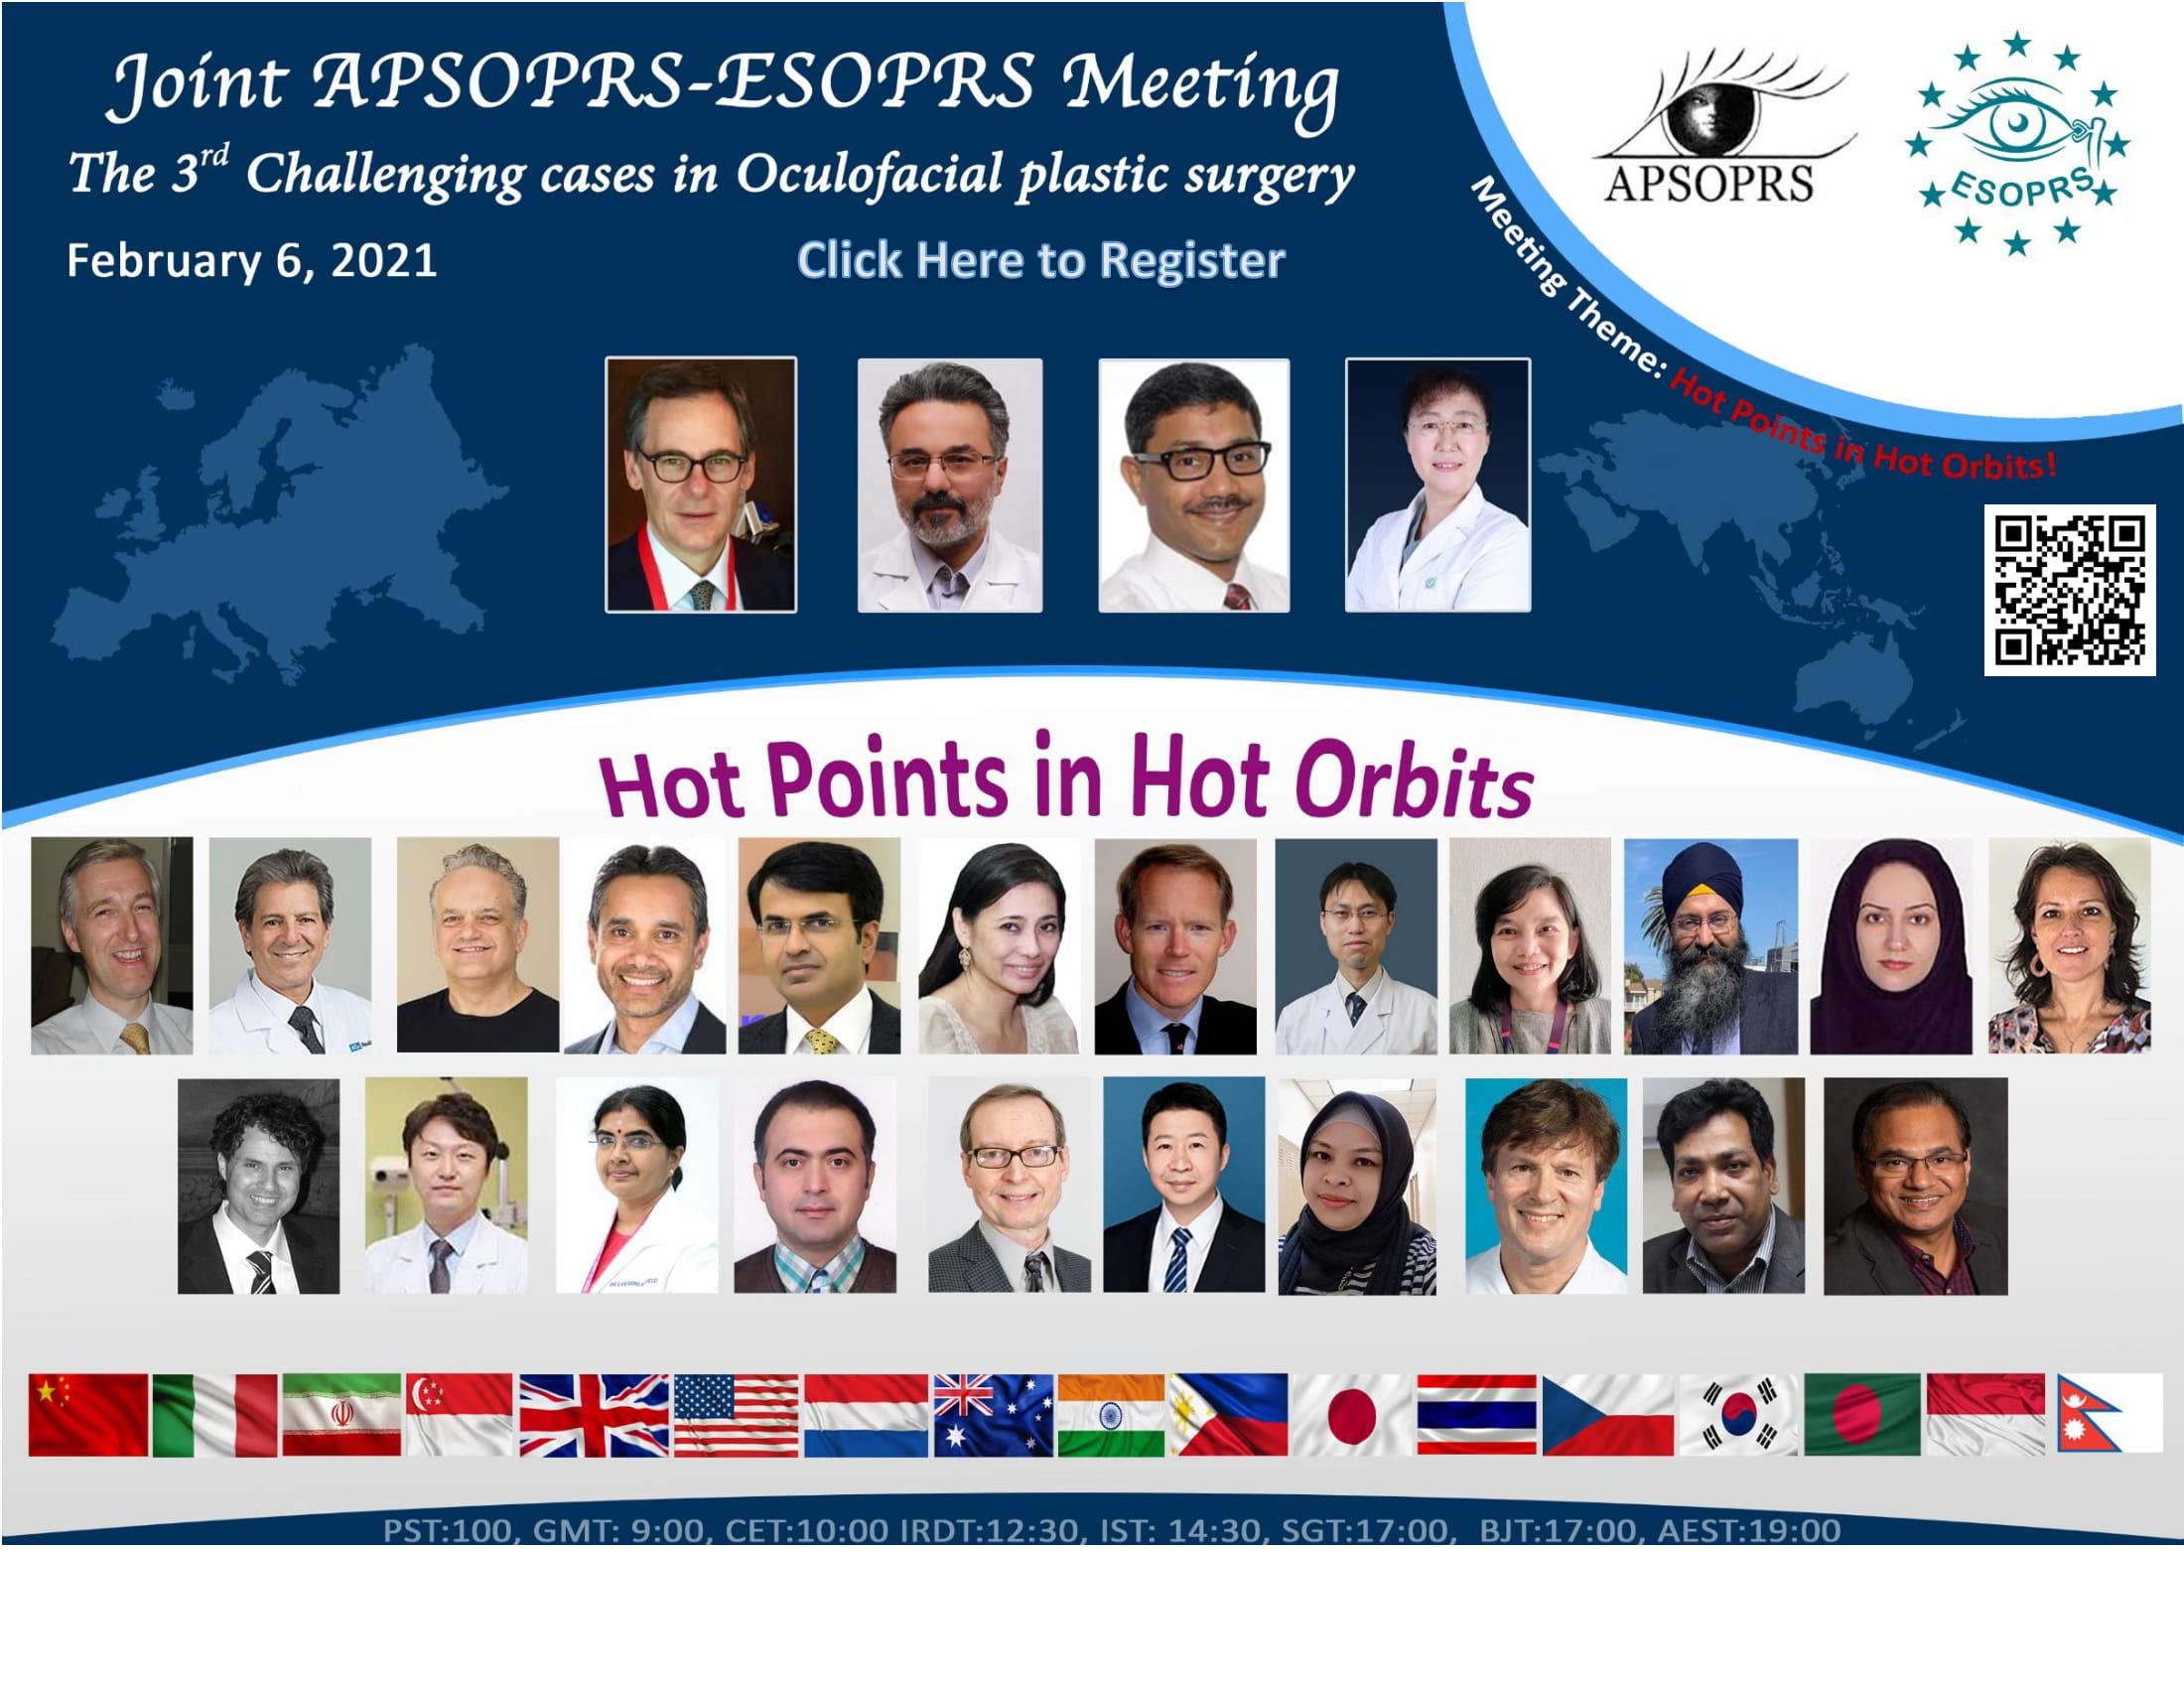 The 3rd Challenging cases in Oculofacial plastic surgery -A joint APSOPRS-ESOPRS joint meeting